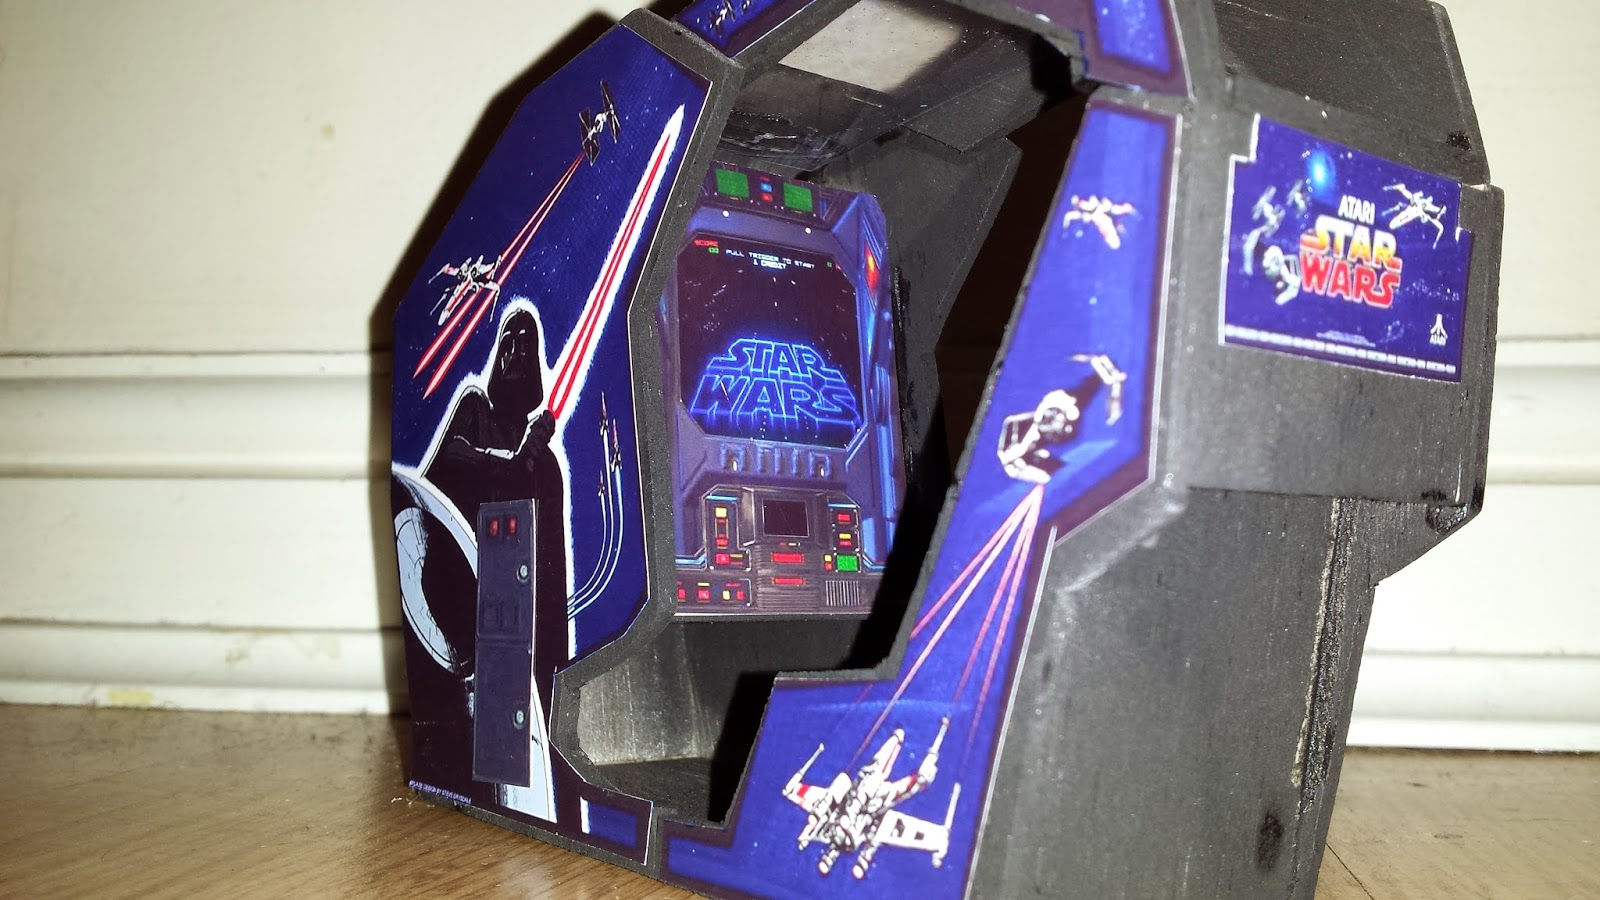 star wars arcade sit down